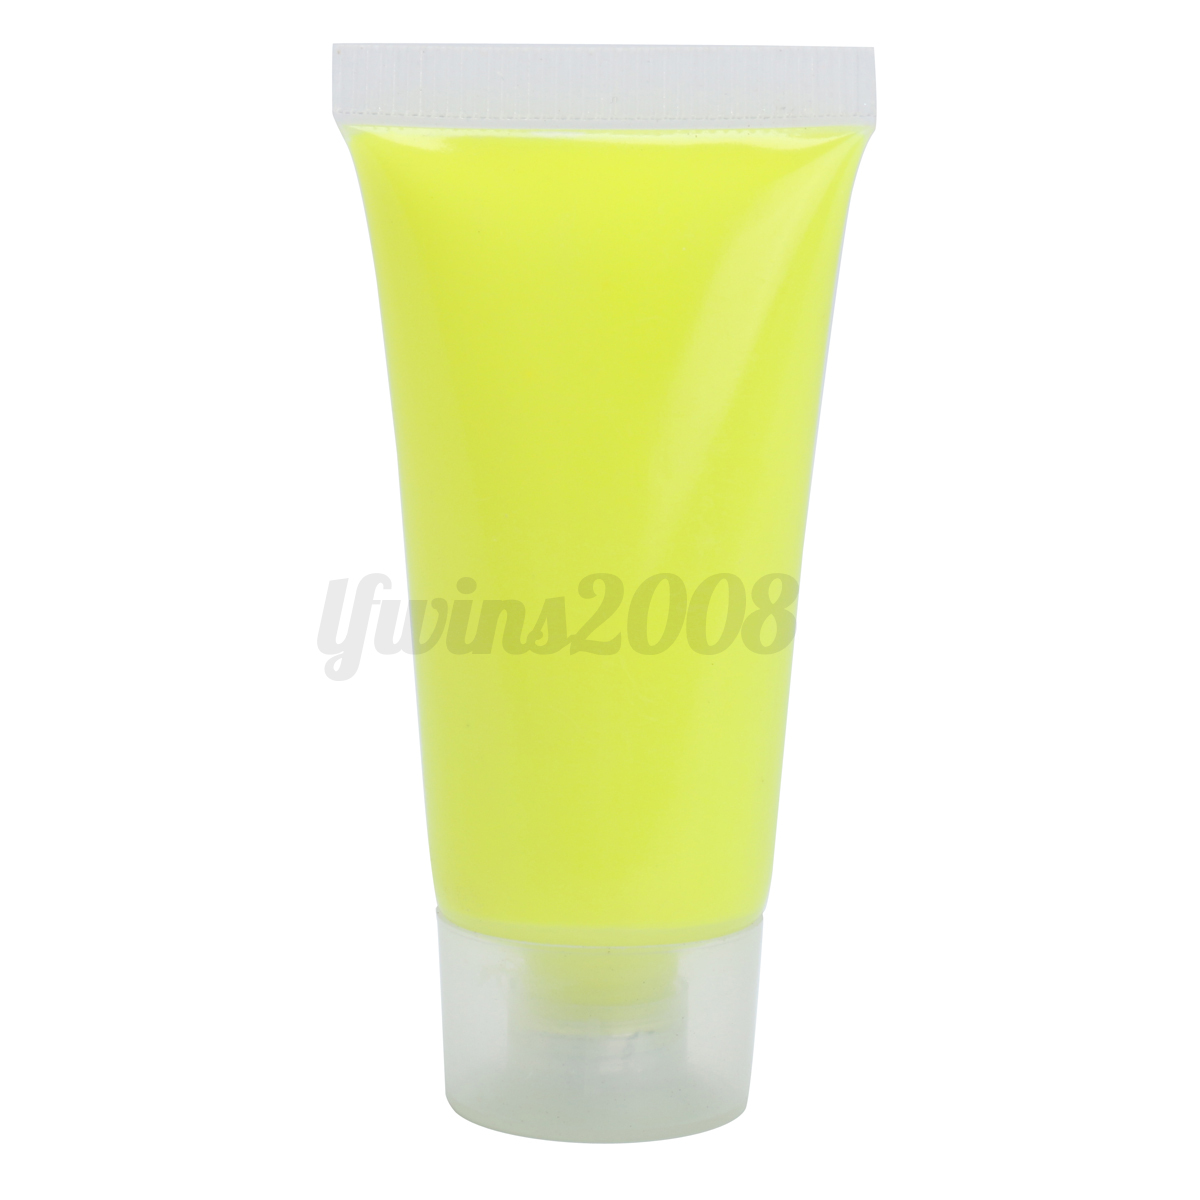 12-Couleur-Neon-Fluo-UV-Peinture-Pigment-Maquillage-Visage-Corps-Party-Halloween